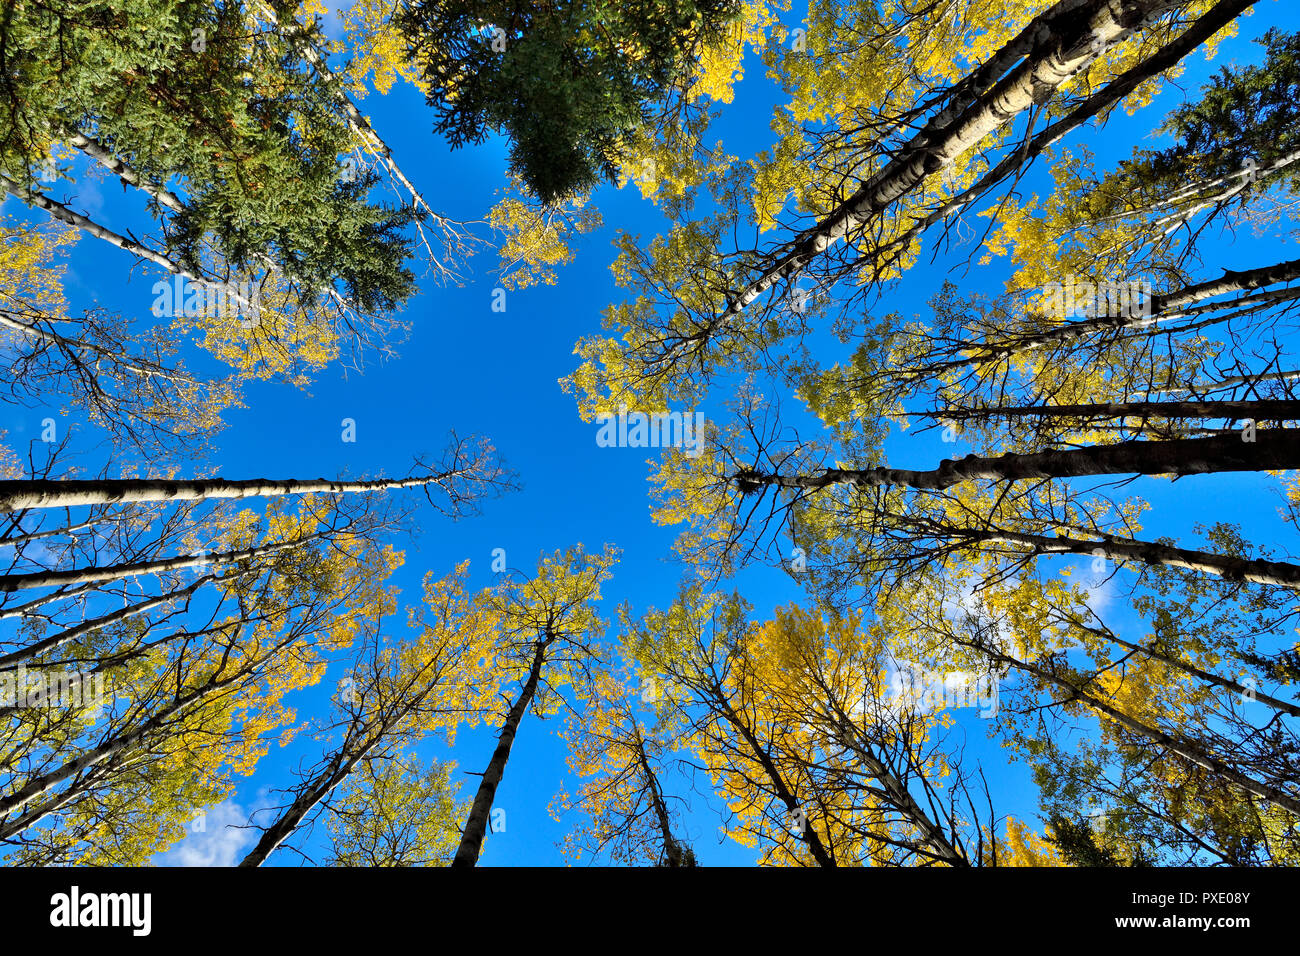 A horizontal image looking up at at the tree tops of a mixed stand of trees against a blue sky in rural Alberta Canada - Stock Image